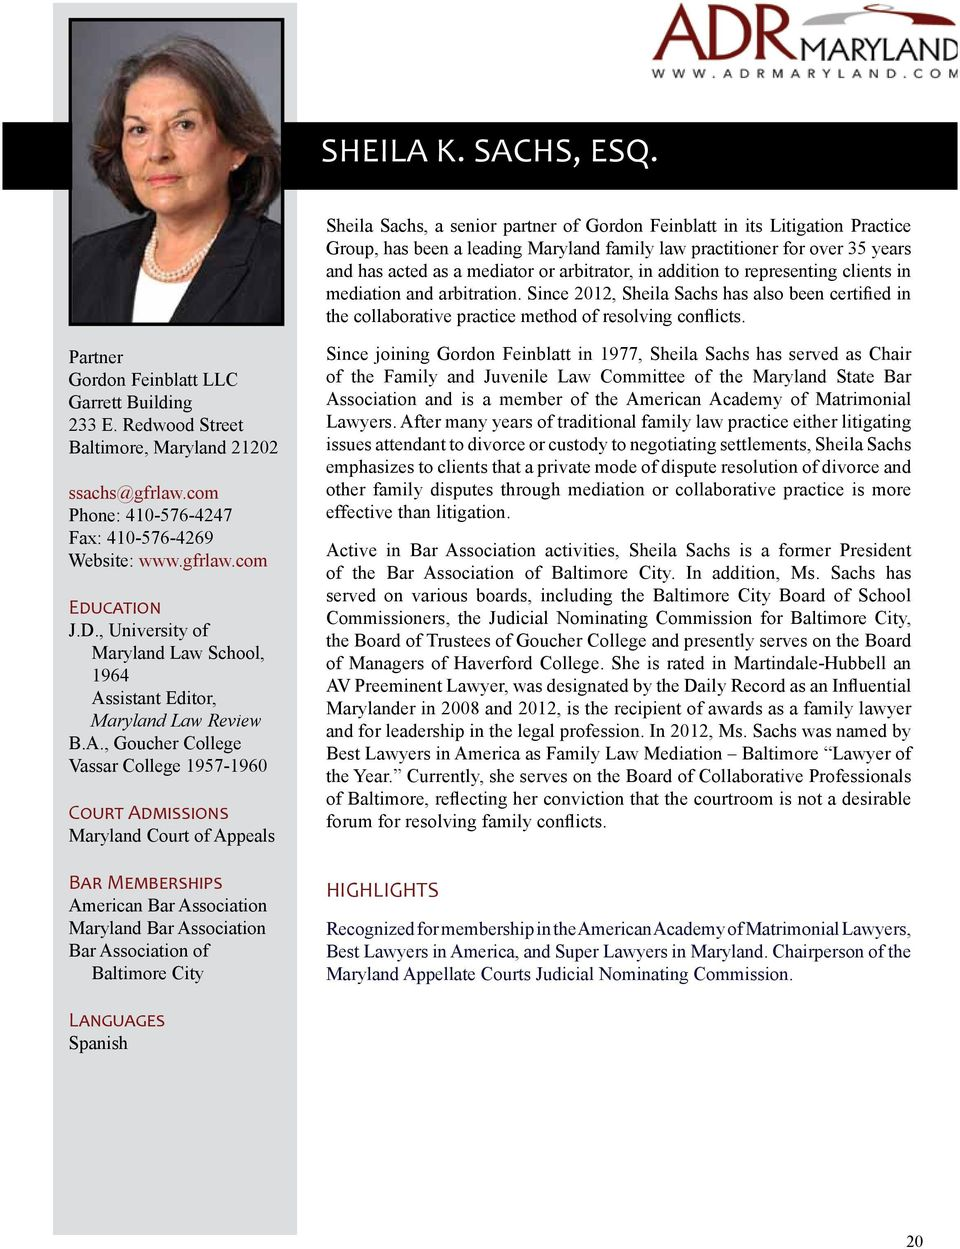 addition to representing clients in mediation and arbitration. Since 2012, Sheila Sachs has also been certified in the collaborative practice method of resolving conflicts.